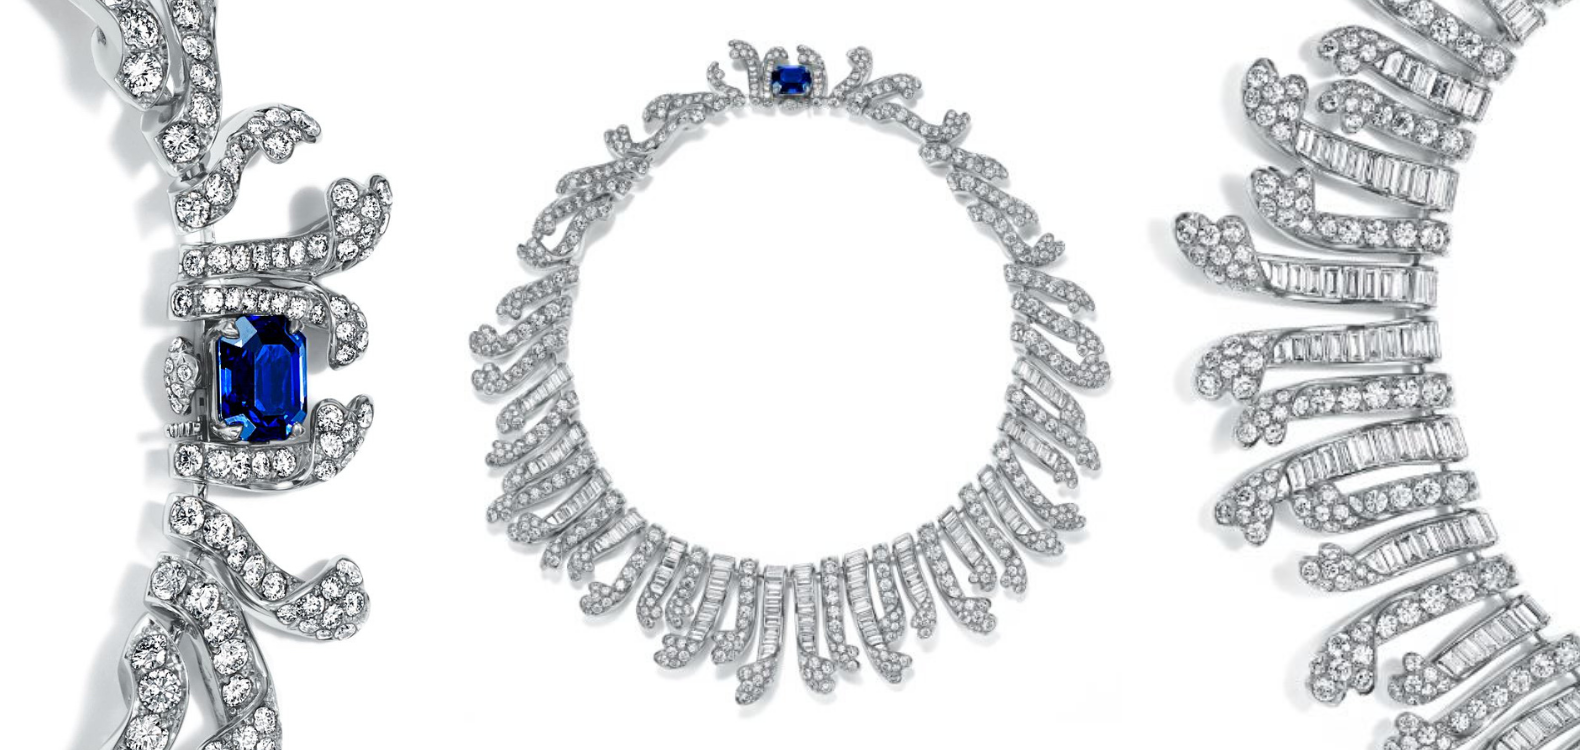 Tiffany & Co. presents the legendary designs of Jean Schlumberger